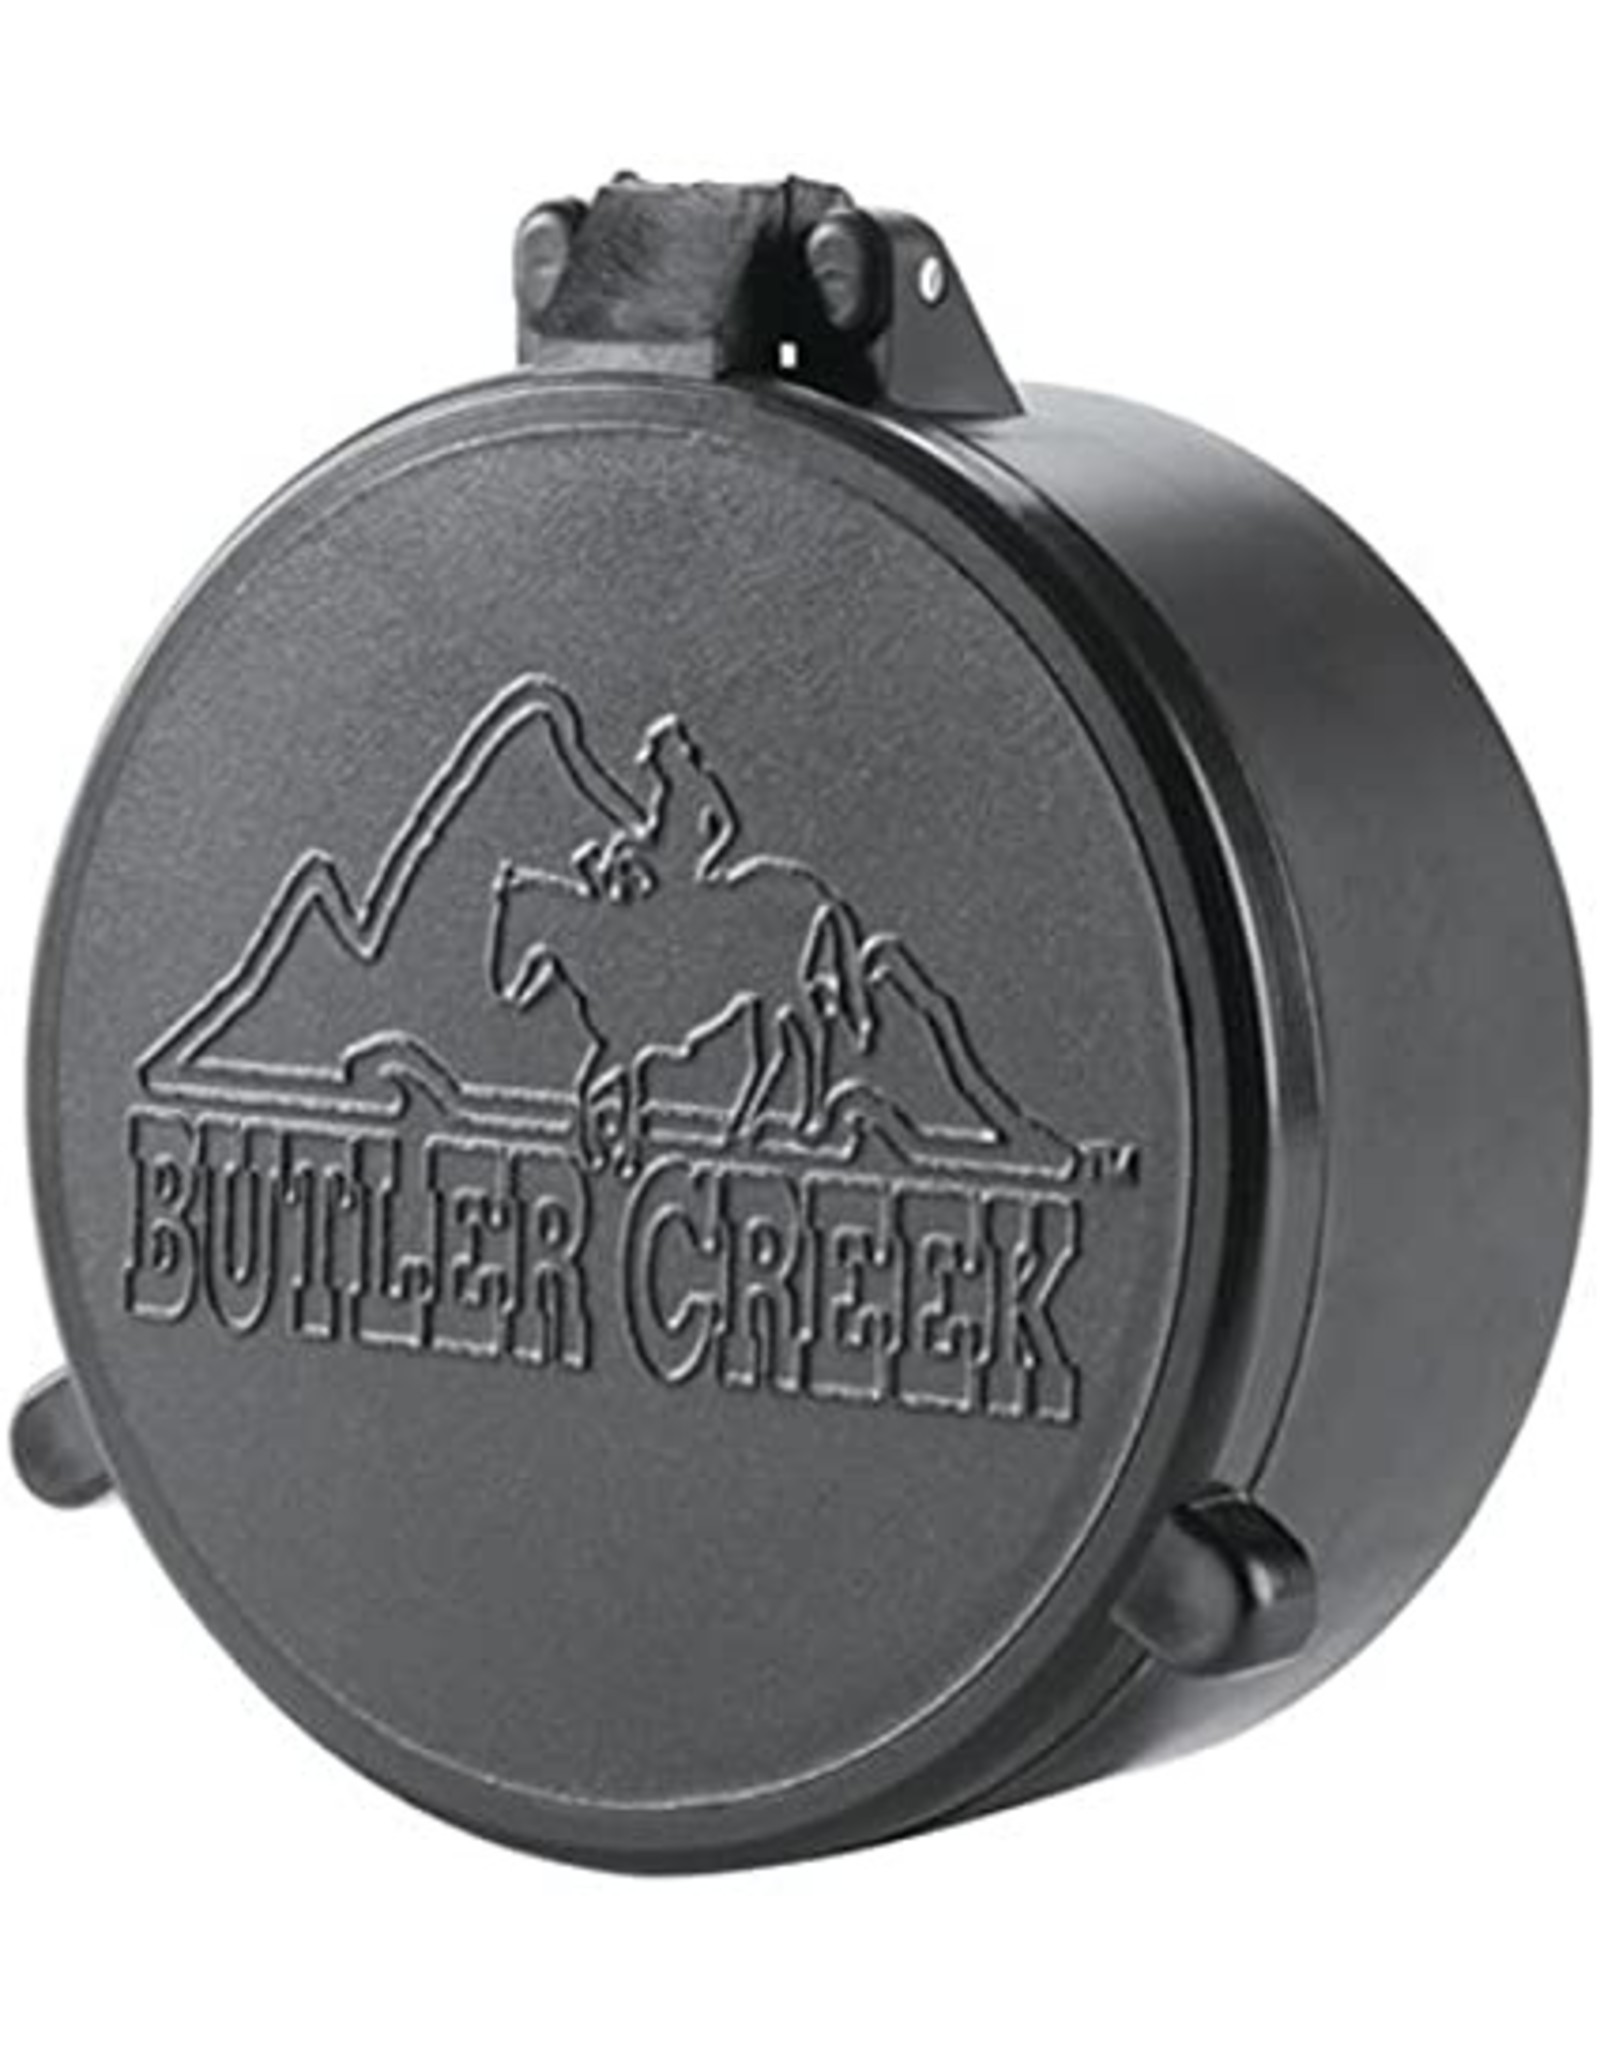 Butler Creek Butler Creek 29 OBJ Flip Open Cap Scope Cover